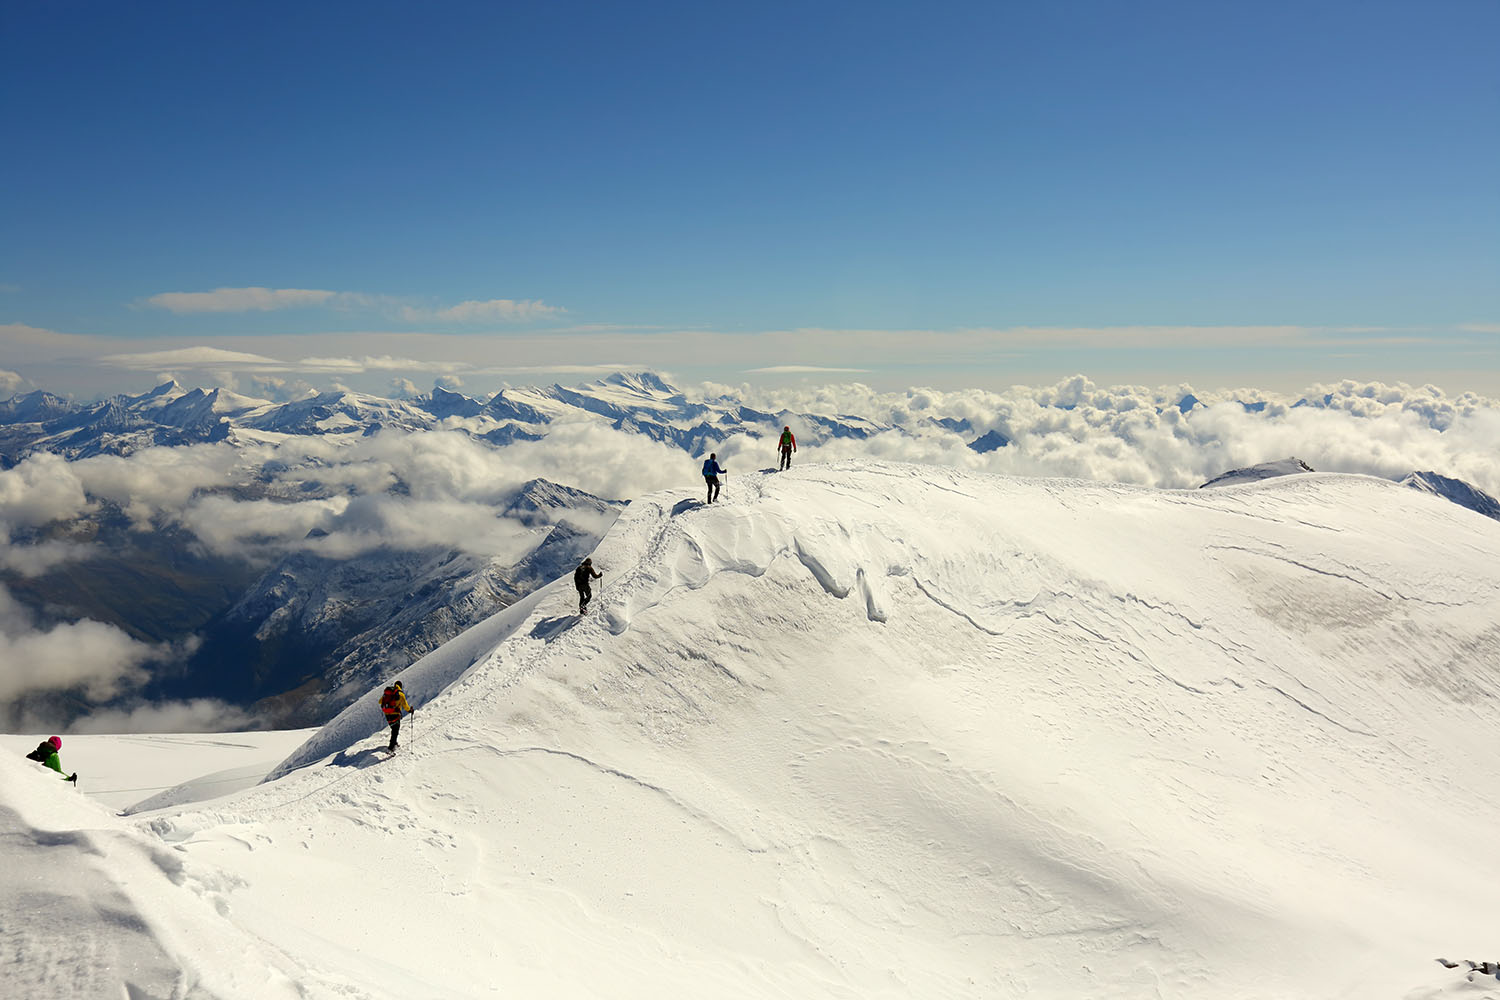 On a ski tour in Salzburger Lungau - the views alone are ample reward for the effort that went into the climb